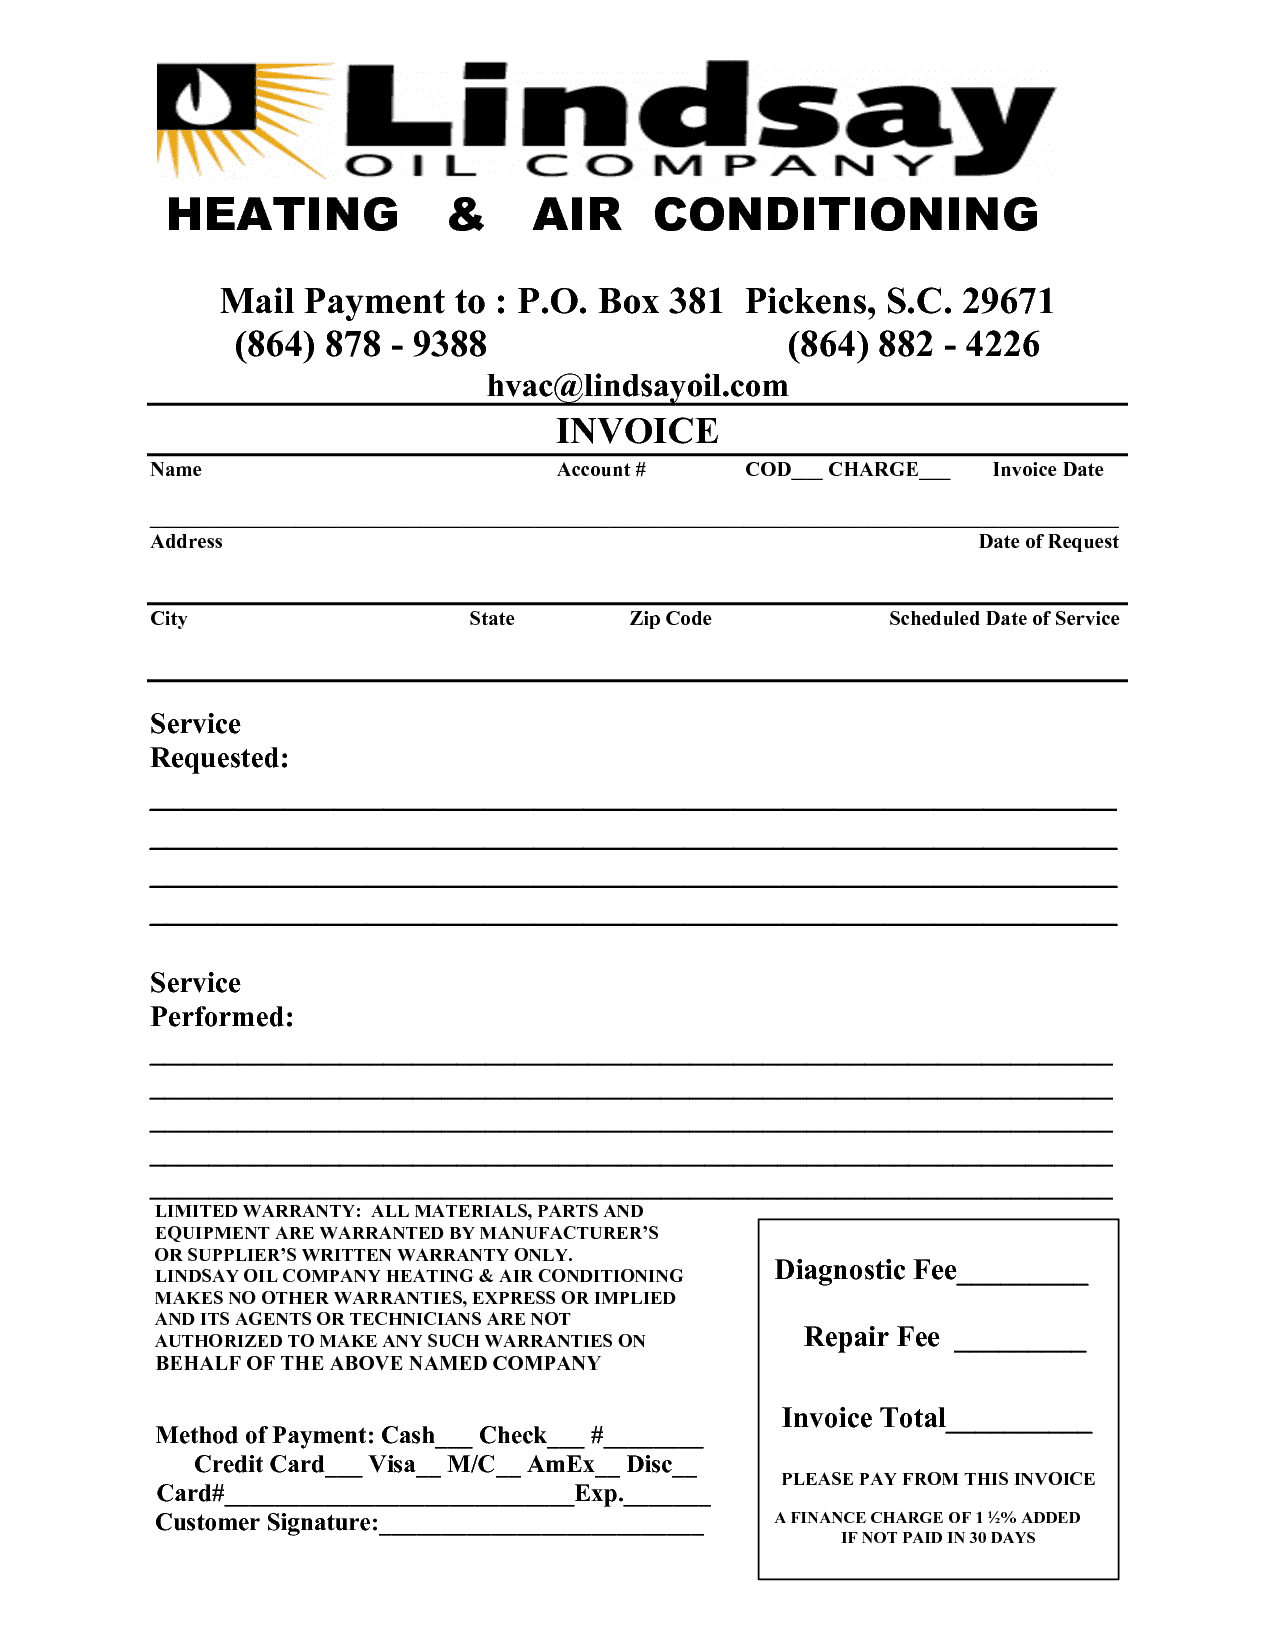 Free HVAC Invoice Template Download And HVAC Business Forms